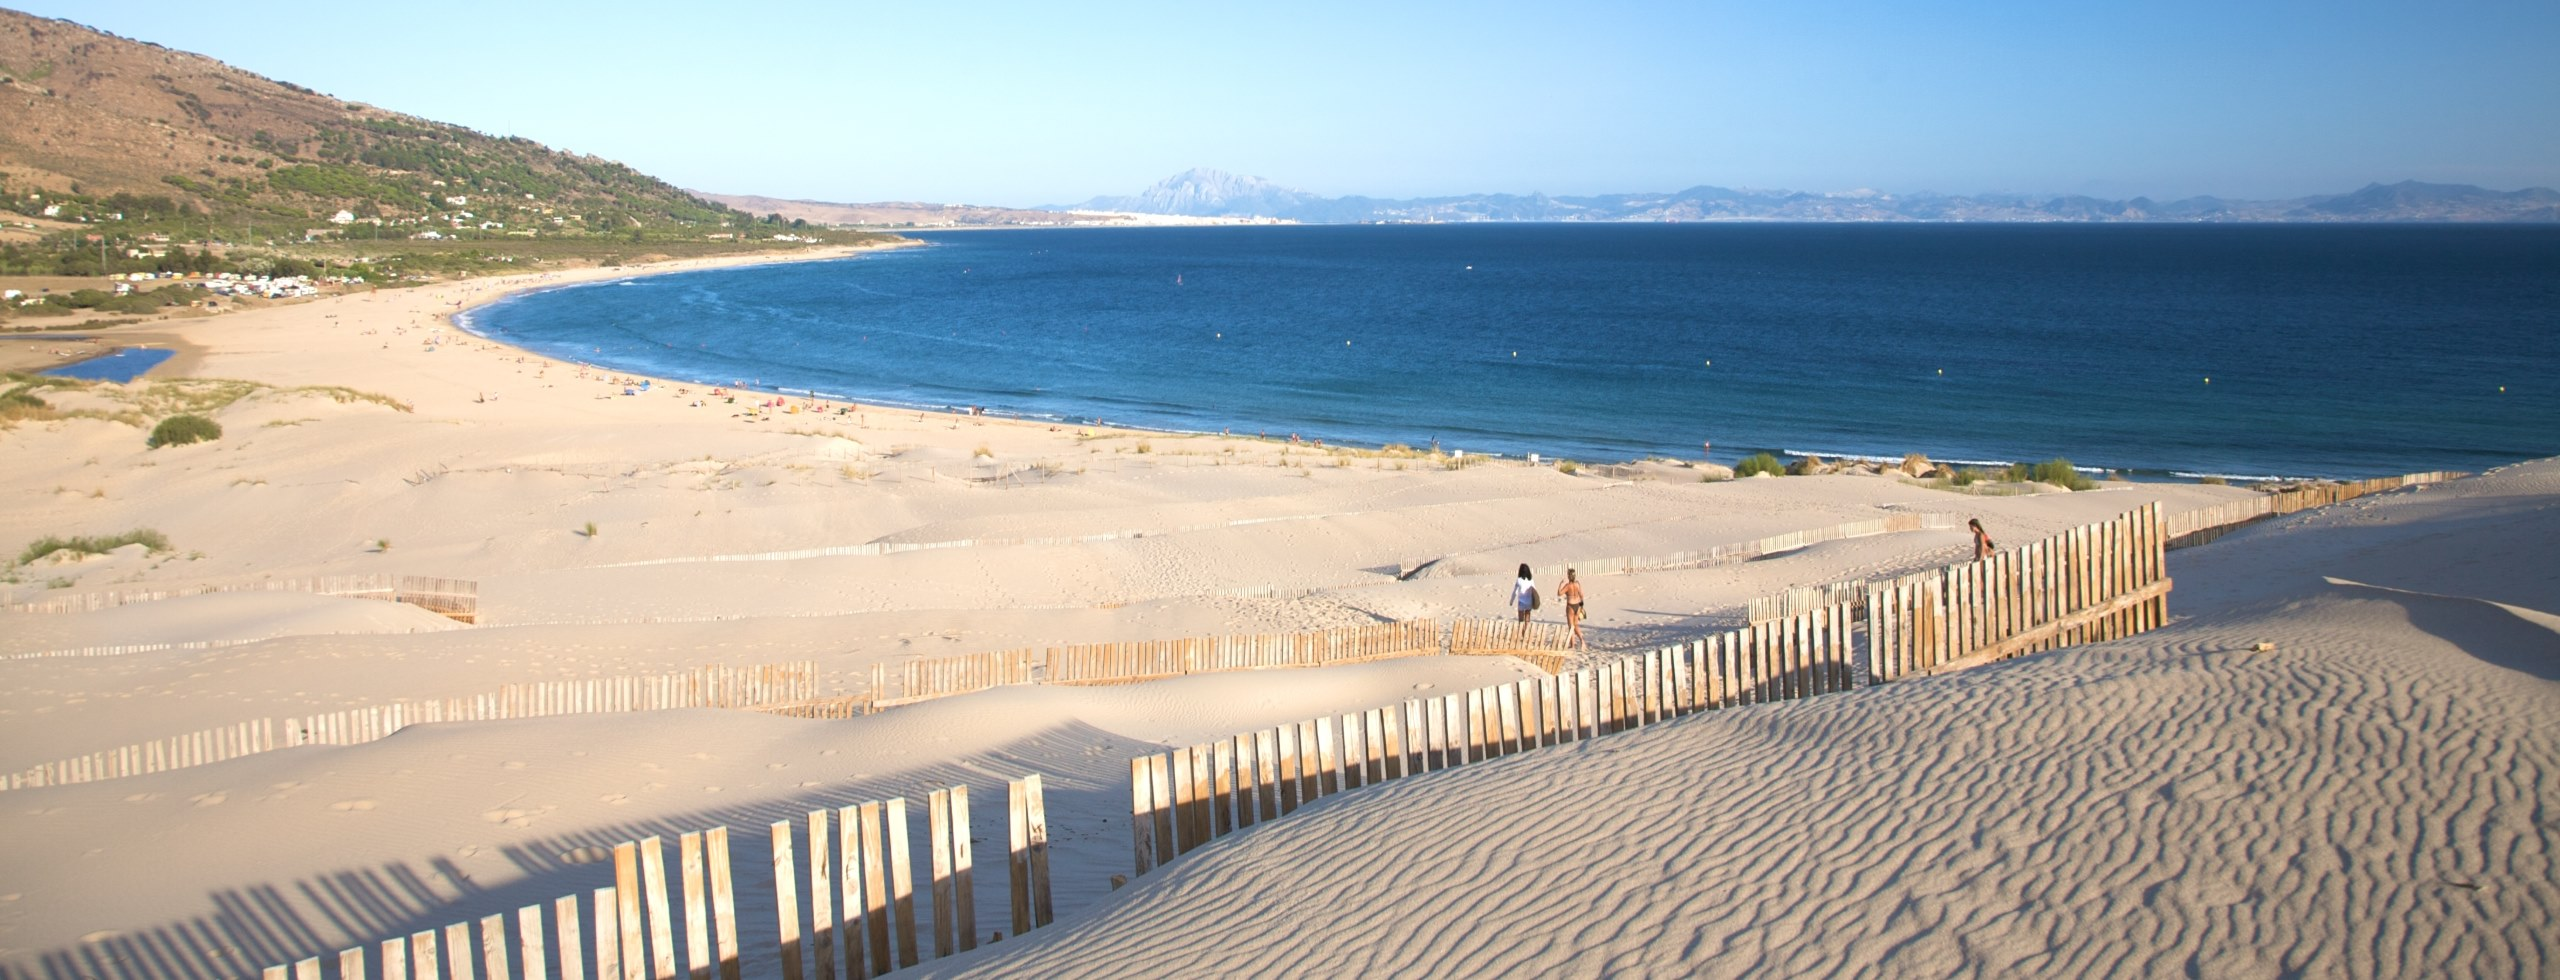 Best Time To Travel To Spain Spain Travel For All Seasons - Spain vacation package